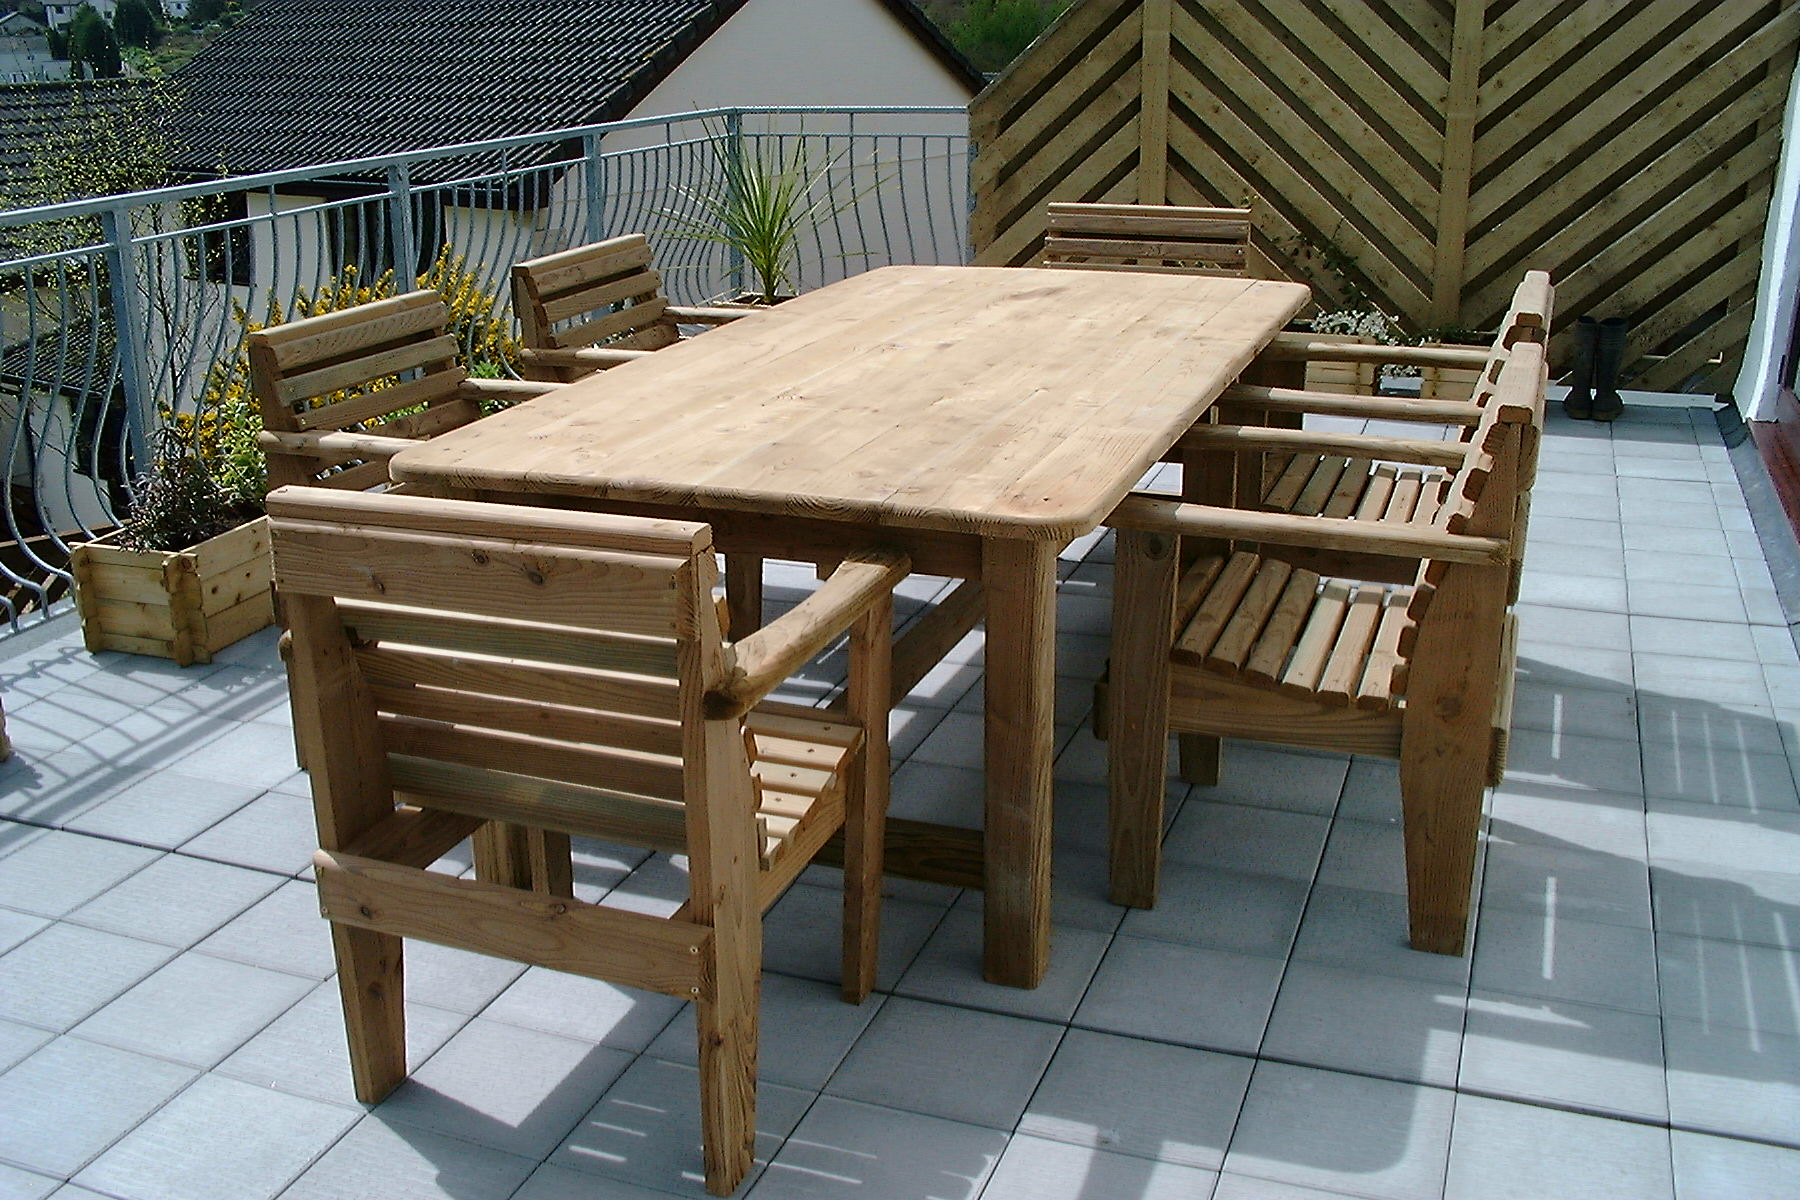 8'X4' TABLE + CHAIRS 04